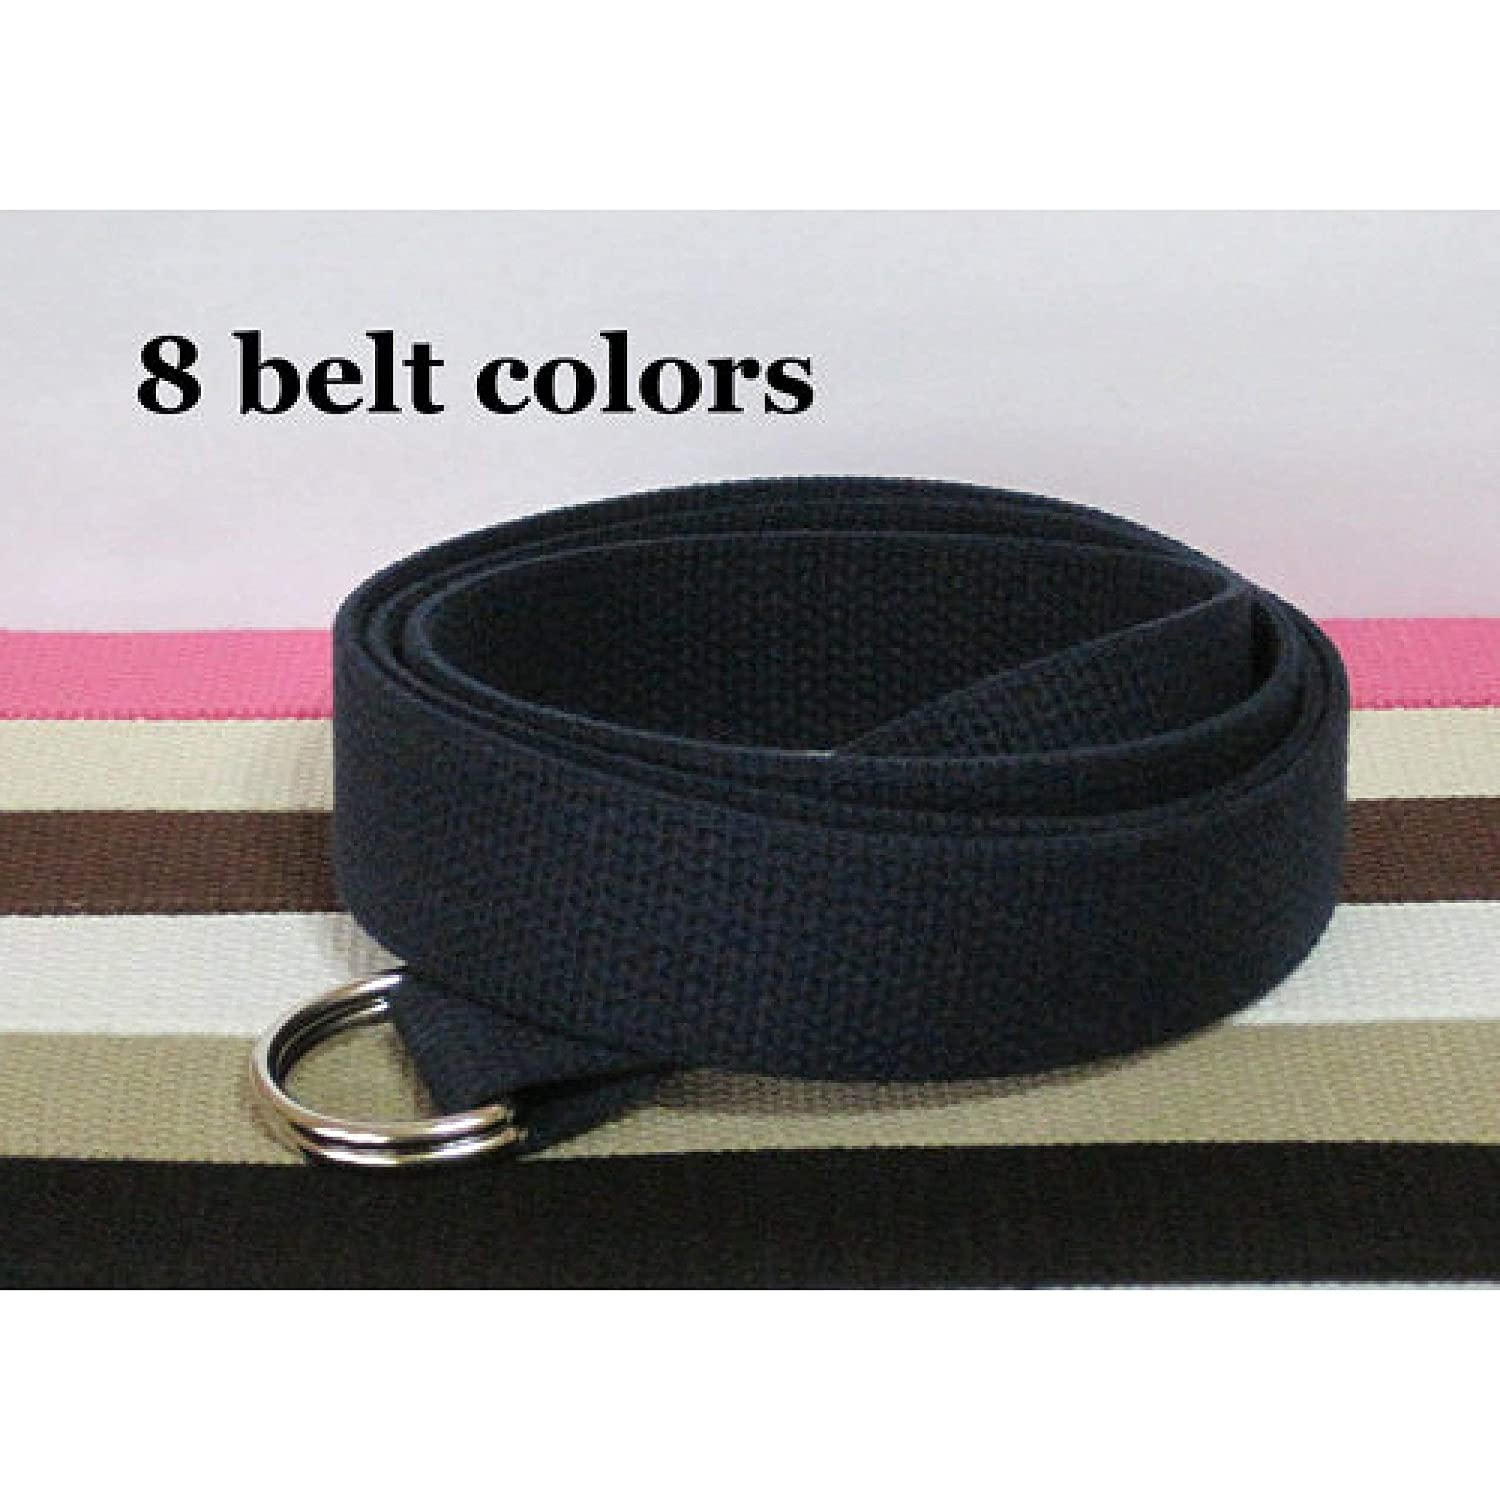 Mens Belt/Canvas Belt/D-Ring Belt/Solid Color Belt in Khaki, Black, White, Navy, Pink, Green - for boys teens men women Big & Tall and Plus Size